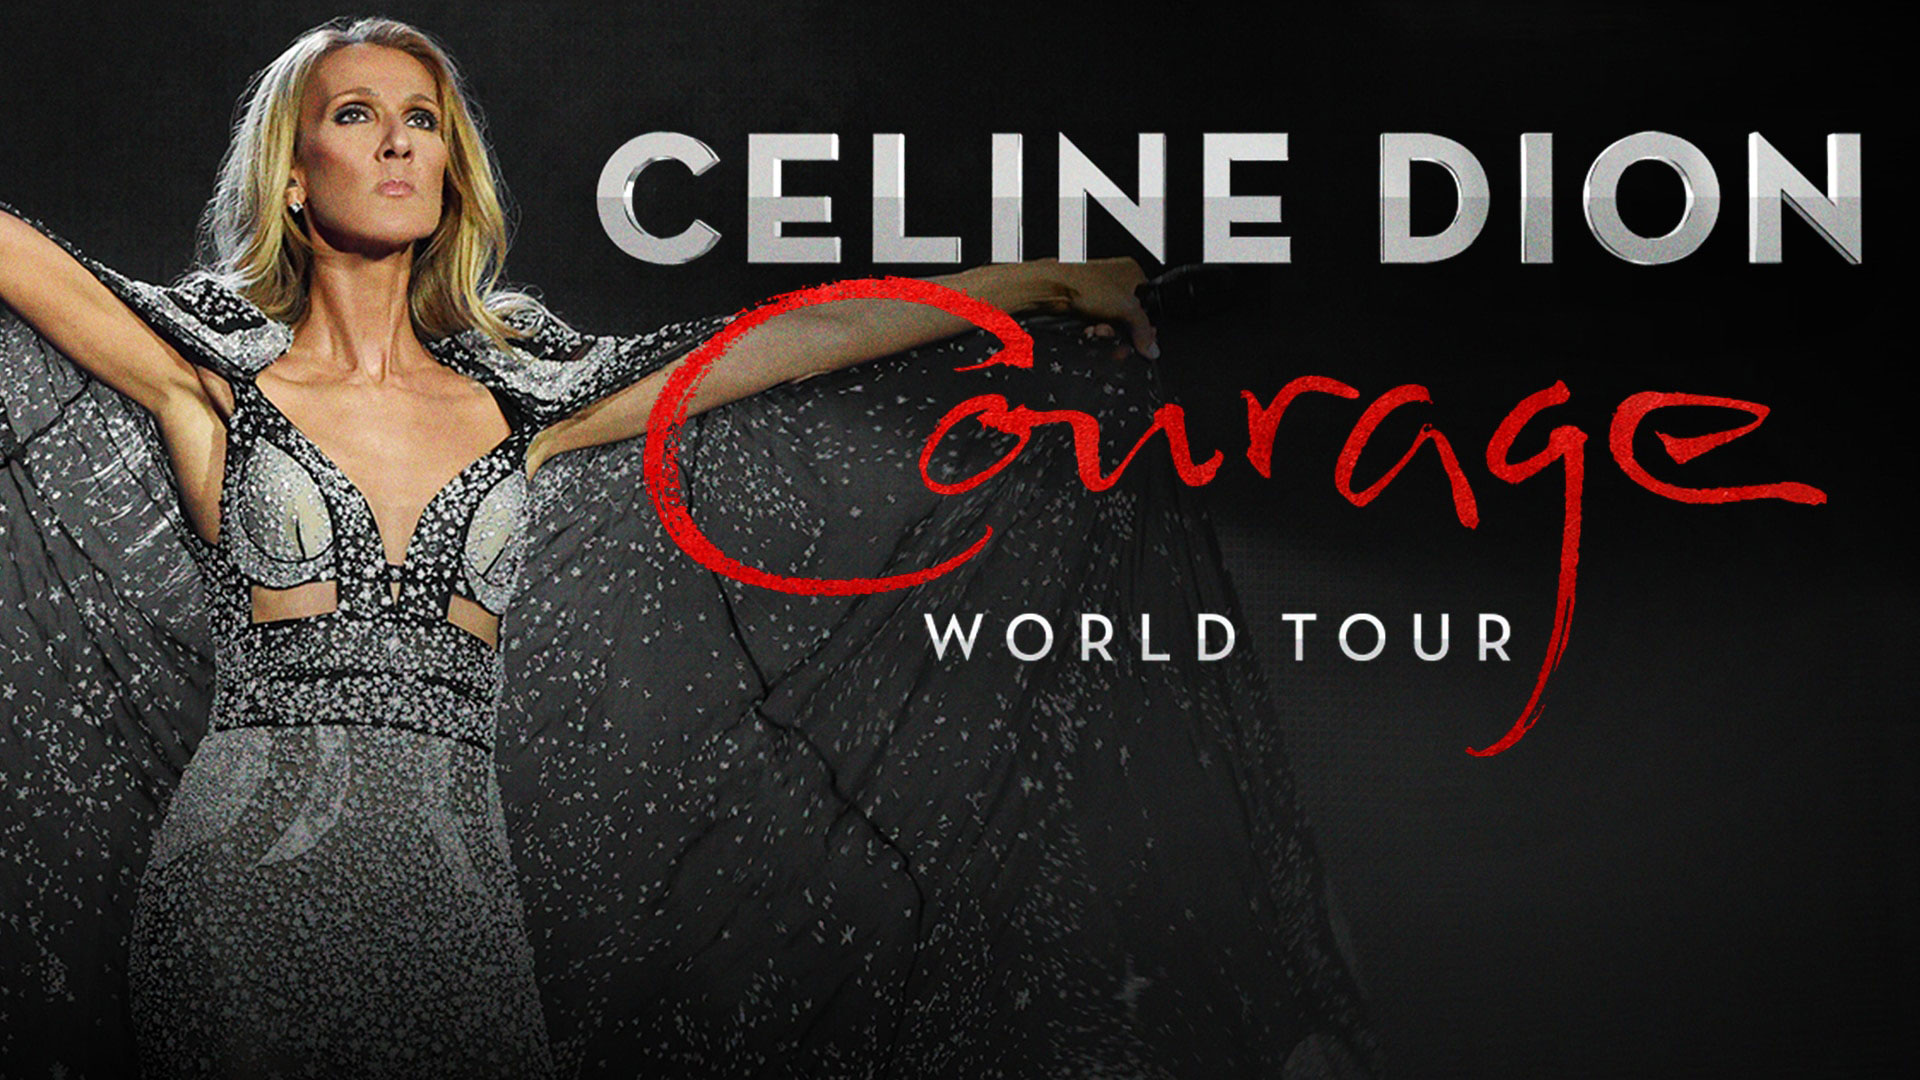 "Celine Dion: Courage World Tour - The Courage World Tour marks Celine Dion's first time touring in over a decade. In the past year, this international superstar has been featuring all her greatest hits from ""My Heart Will Go On,"" to ""The Power of Love,"" at her Caesars Palace Las Vegas residency, which concluded in June 2019. The event will be held on Monday, April 13, 2020; start time is 7:00pm at the Moda Center."